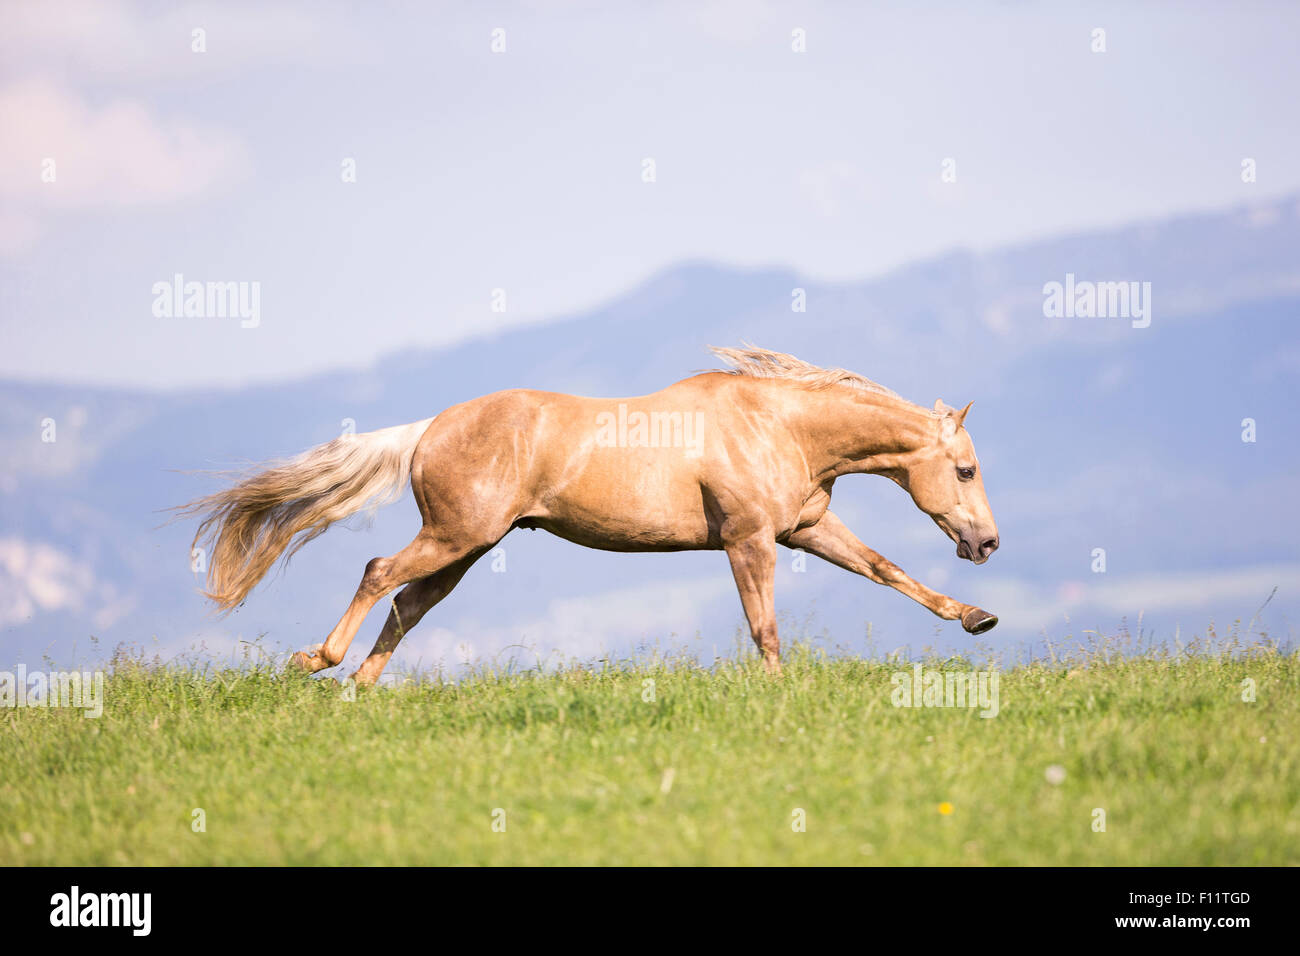 history of the horse equus caballus essay Equus caballus : (n) a large solid-hoofed herbivorous ungulate mammal domesticated since prehistoric times [syn: horse] horses belong to the equus family equus comes from the ancient greek word meaning quickness.